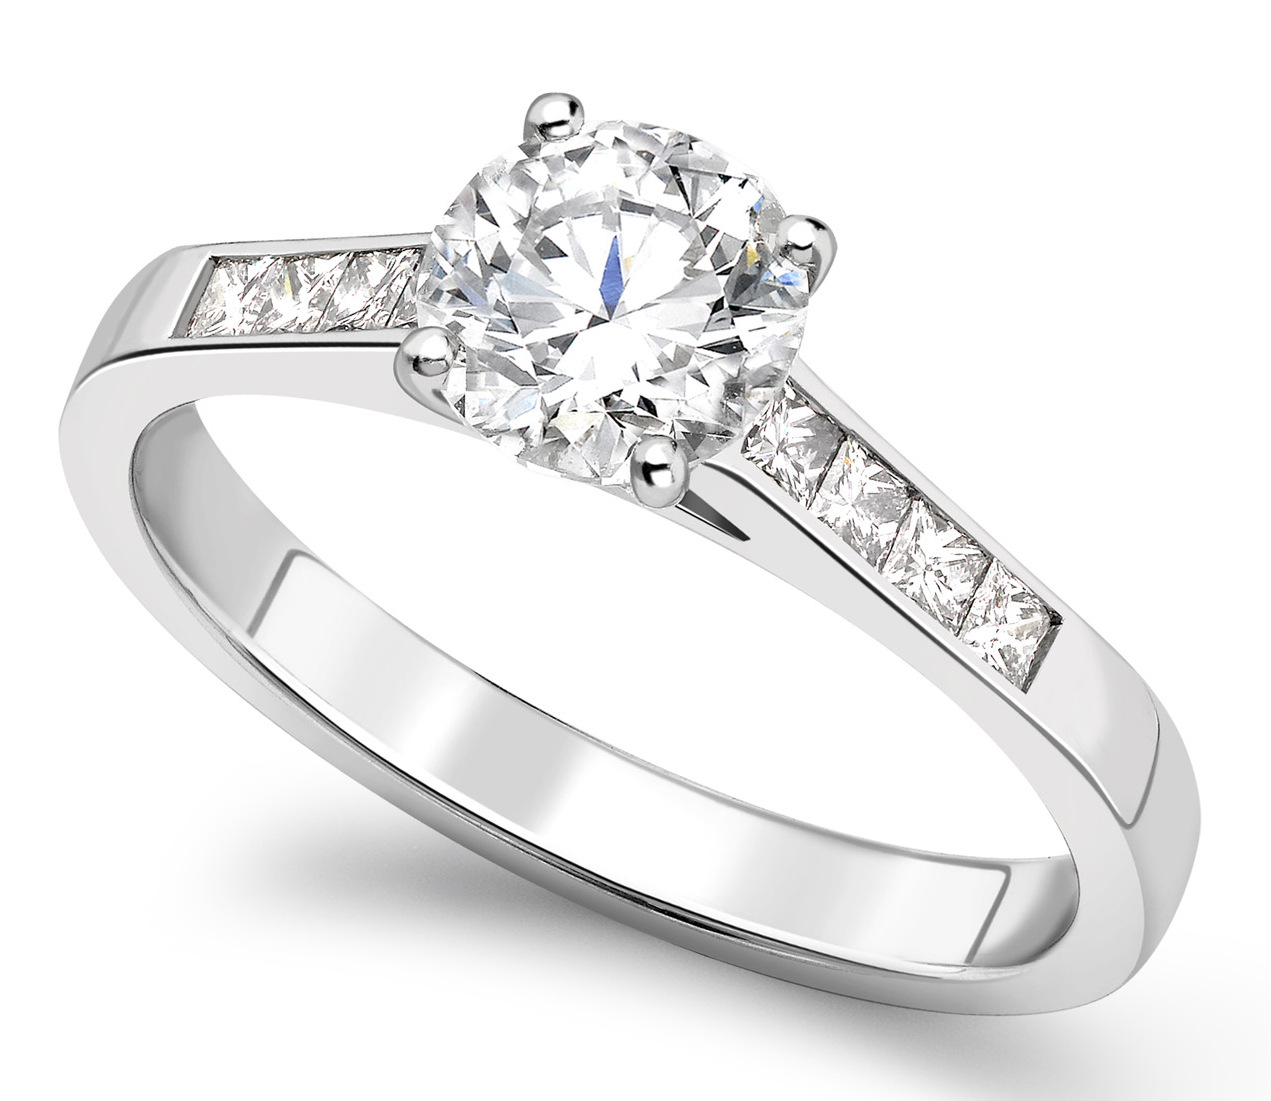 Round 4 Claw Platinum Channel Set Engagement Ring CRC761PLT Main Image